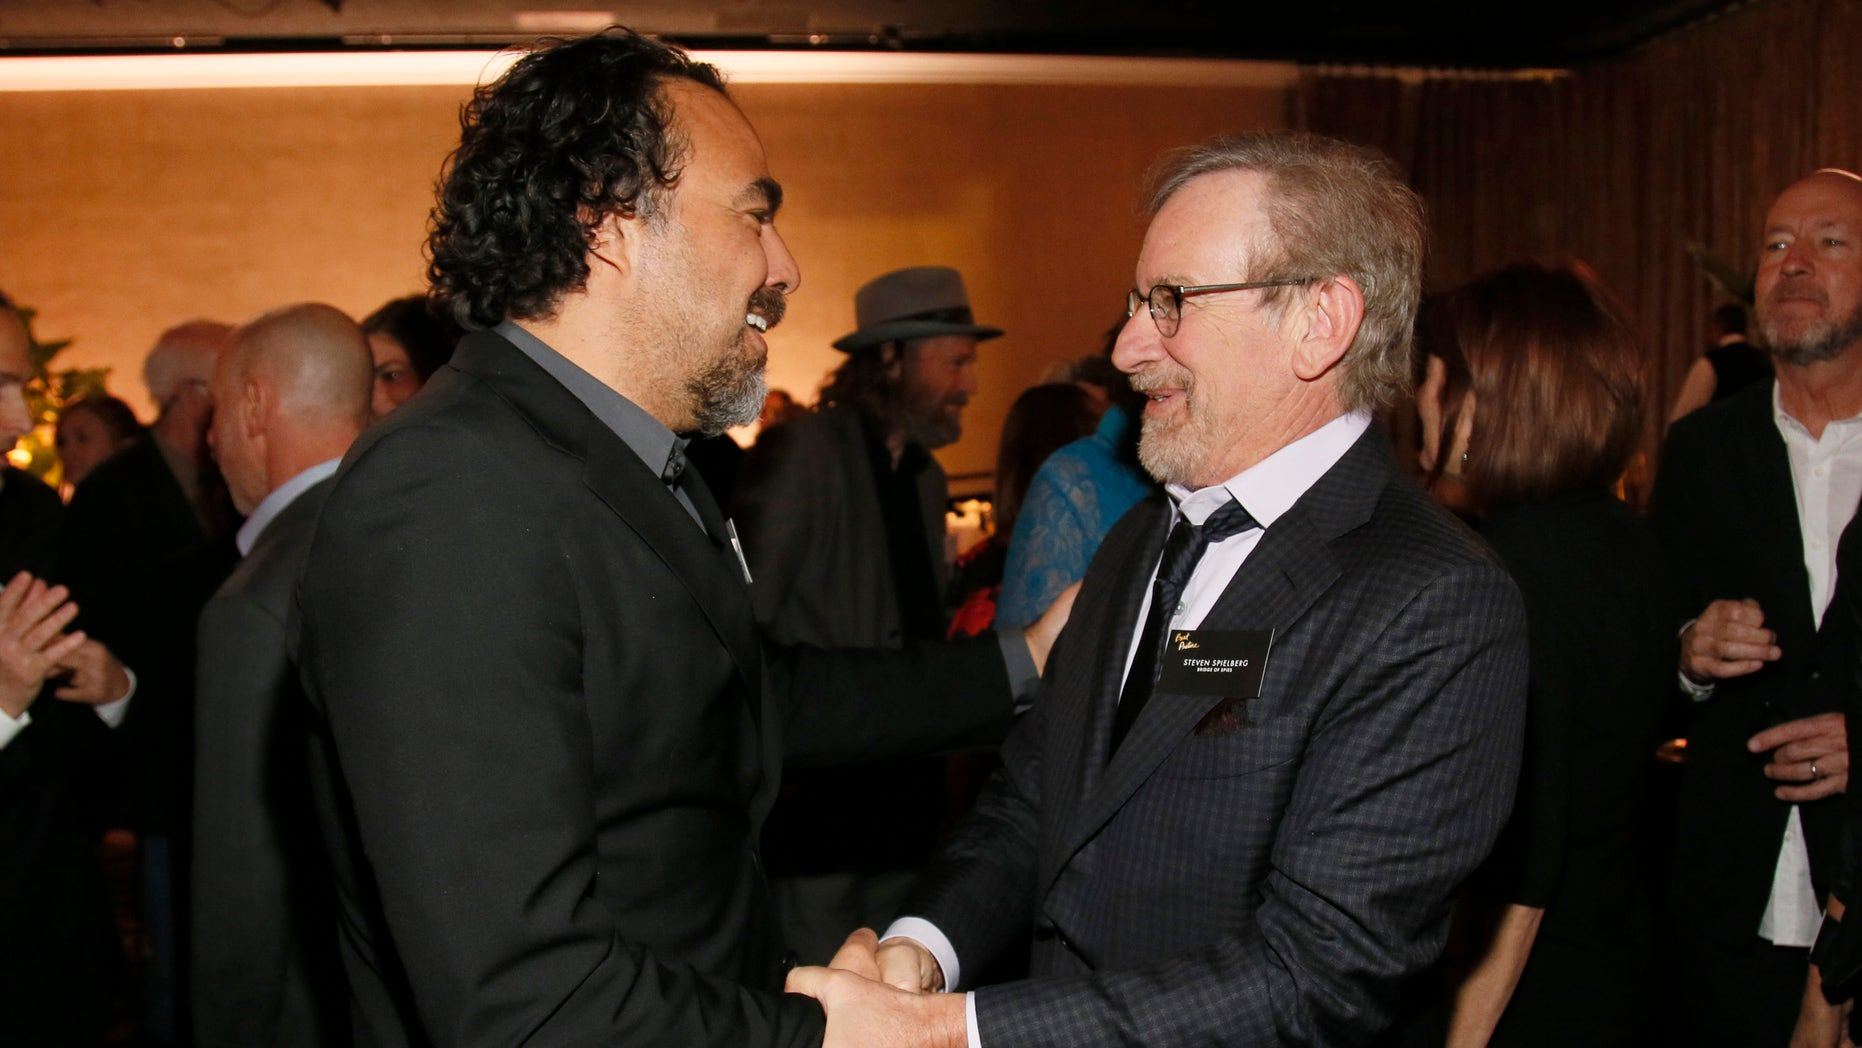 Alejandro Inarritu, left, and Steven Spielberg attend the 88th Academy Awards Nominees Luncheon at The Beverly Hilton hotel on Monday, Feb. 8, 2016, in Beverly Hills, Calif. (Photo by Danny Moloshok/Invision/AP)